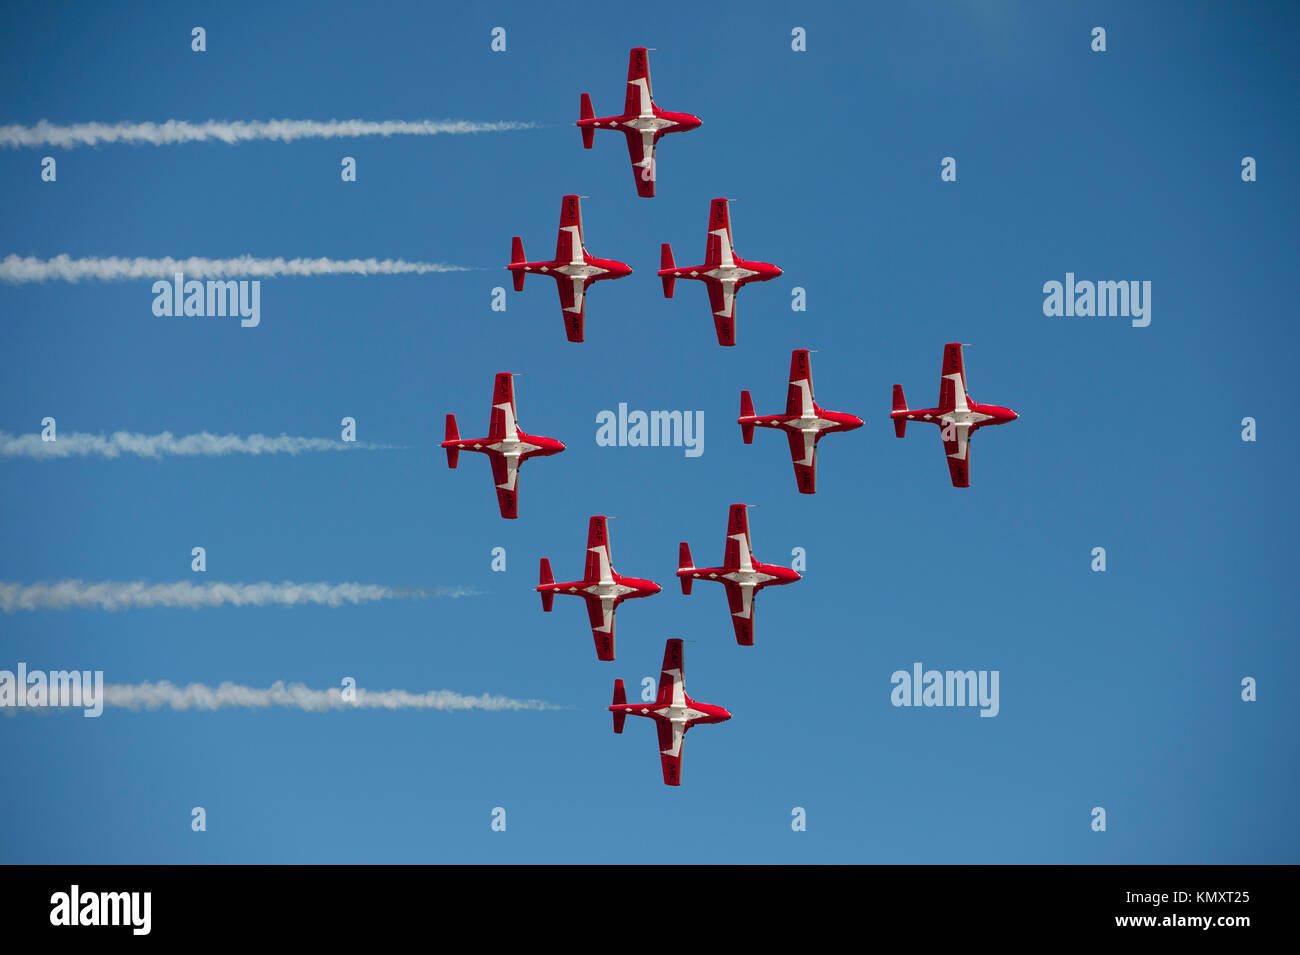 Royal Canadian Snowbirds flying in the 'Silver Dart' formation at the 'Gowen Thunder 2017 Airshow' - Stock Image